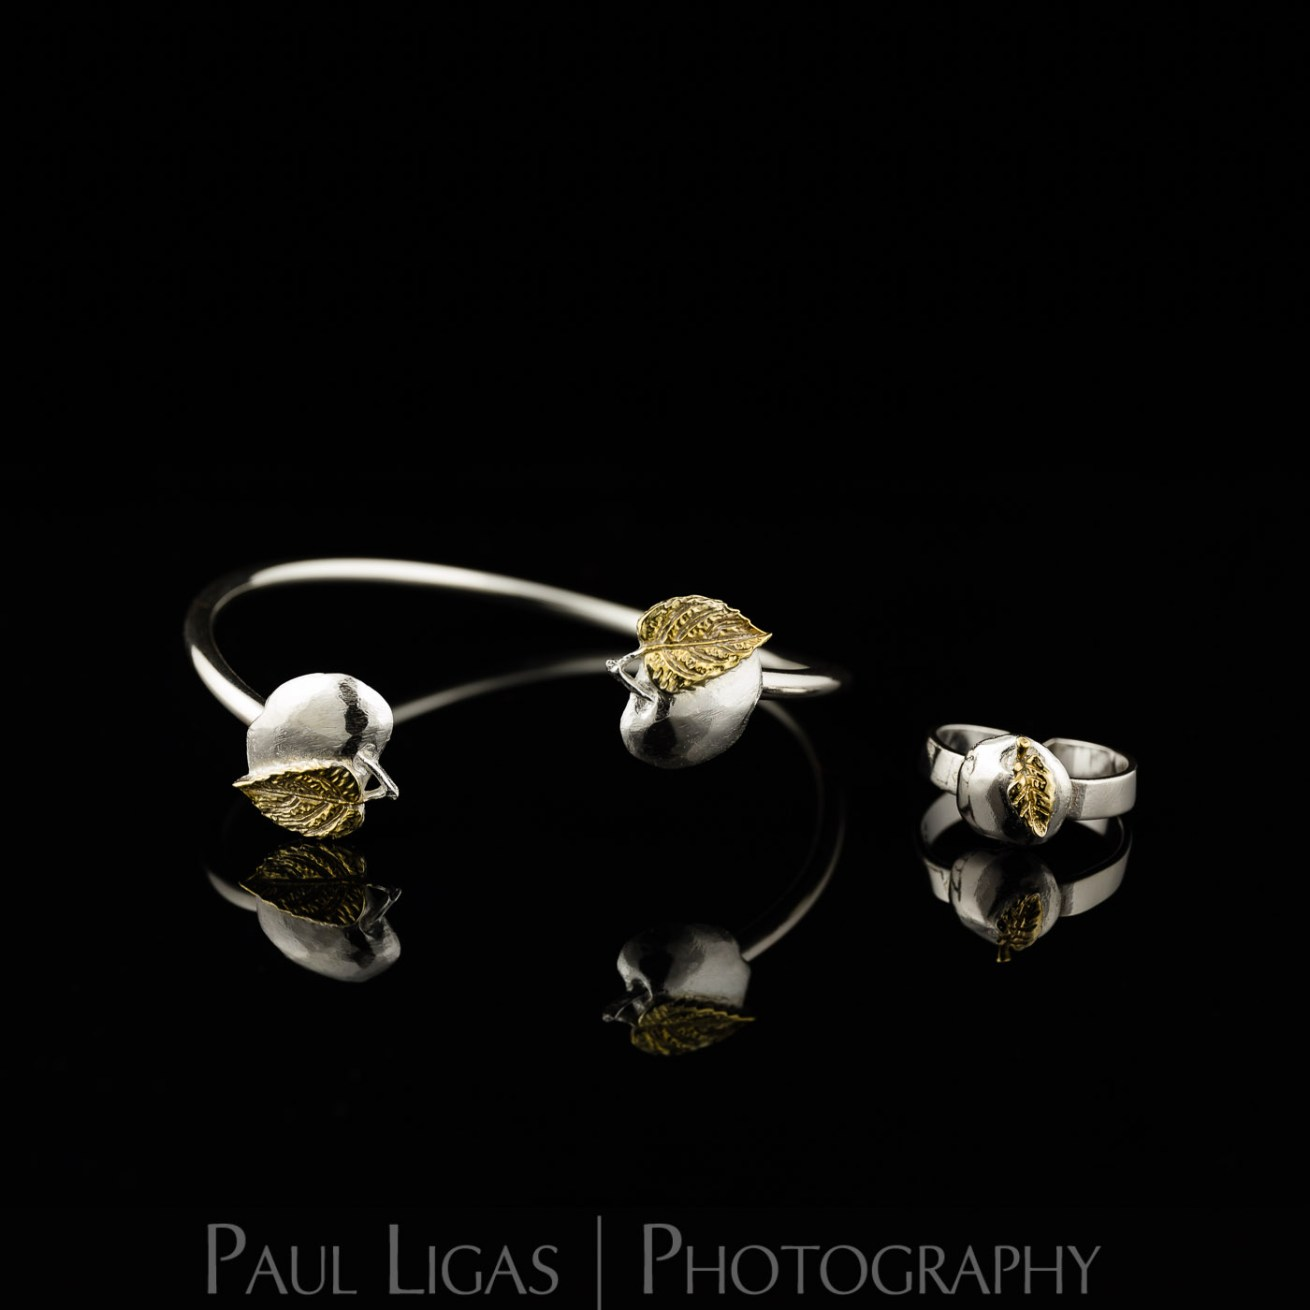 JB Gaynan & Son, Ledbury, Herefordshire jewellery product photographer photography 1703